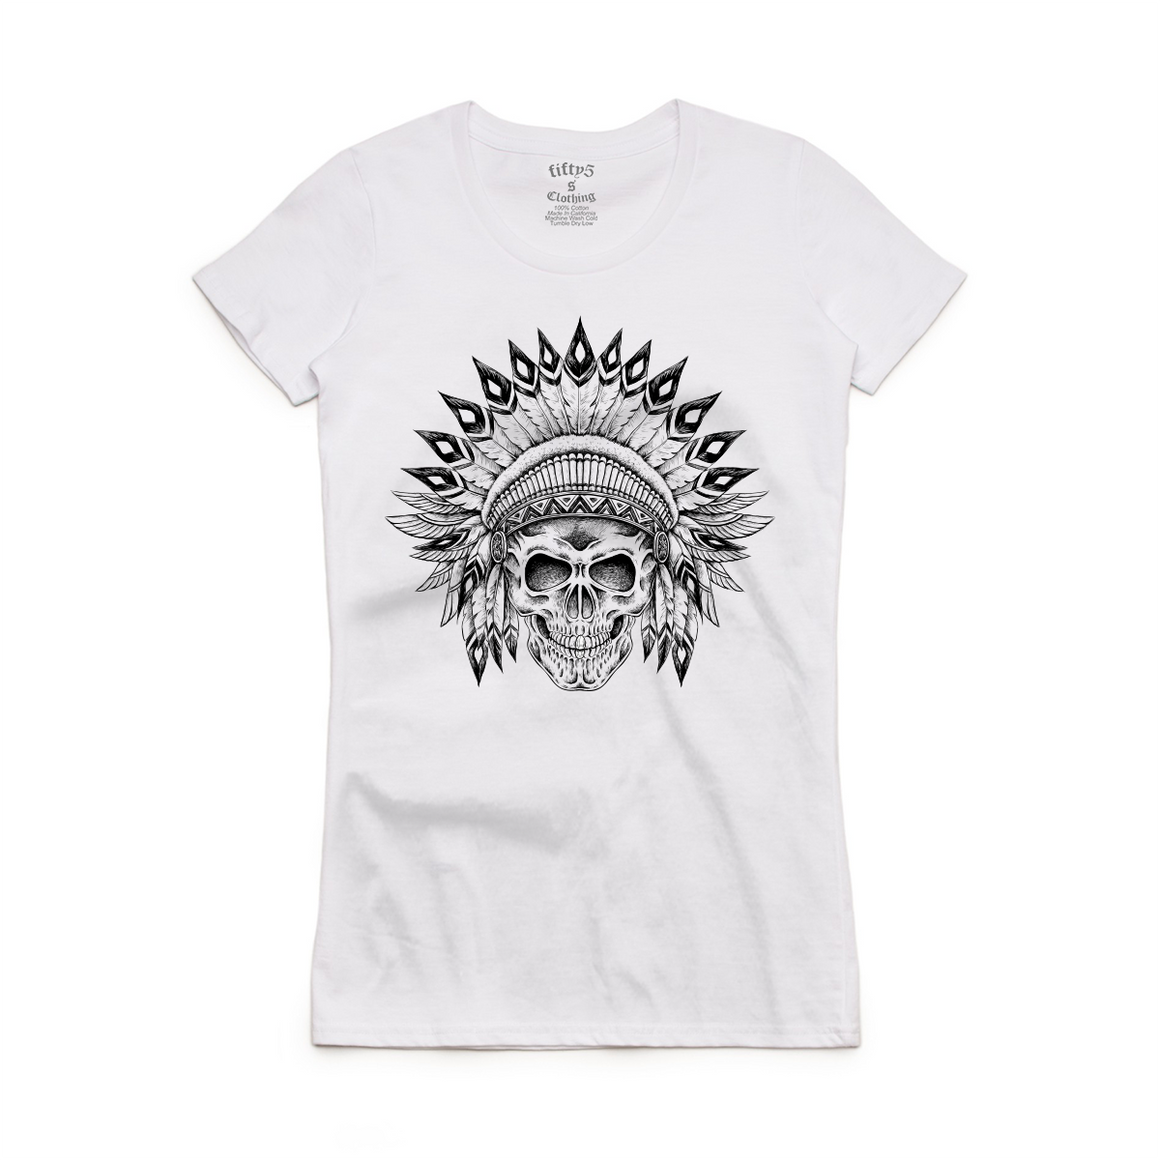 Fifty5 Clothing Indian Chief Skull Women's Crew Neck T-Shirt